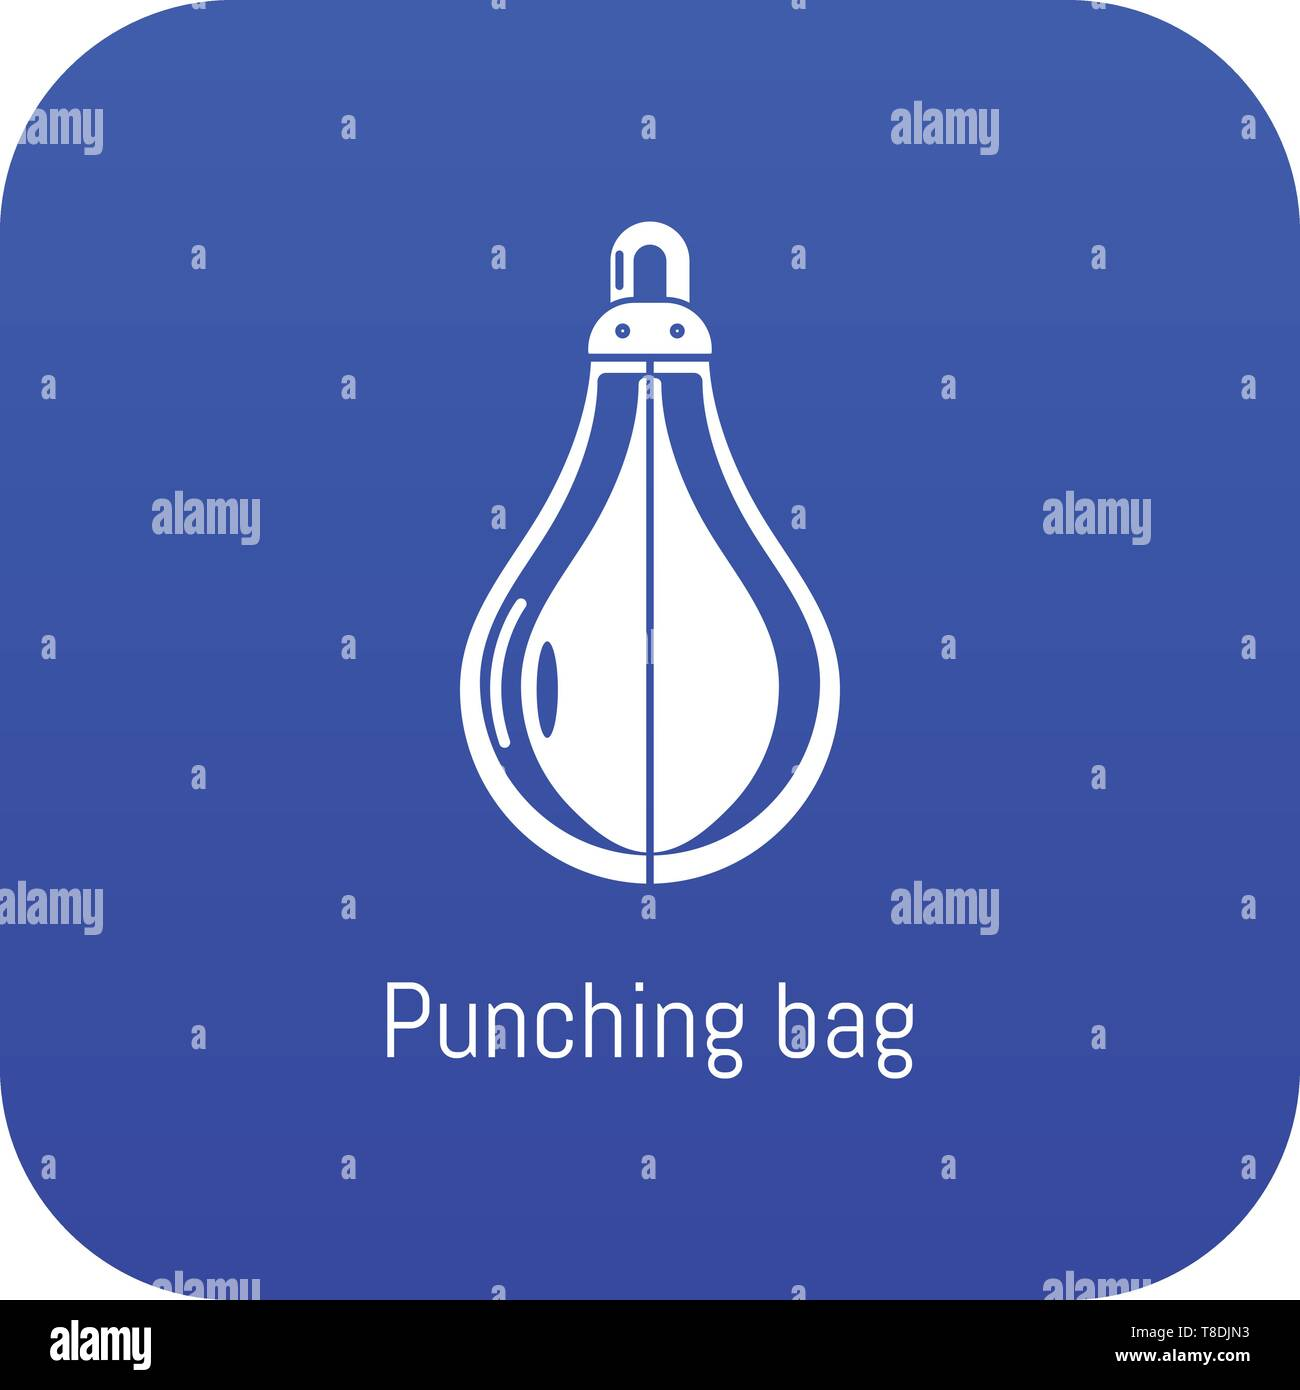 Punching bag icon blue vector - Stock Image